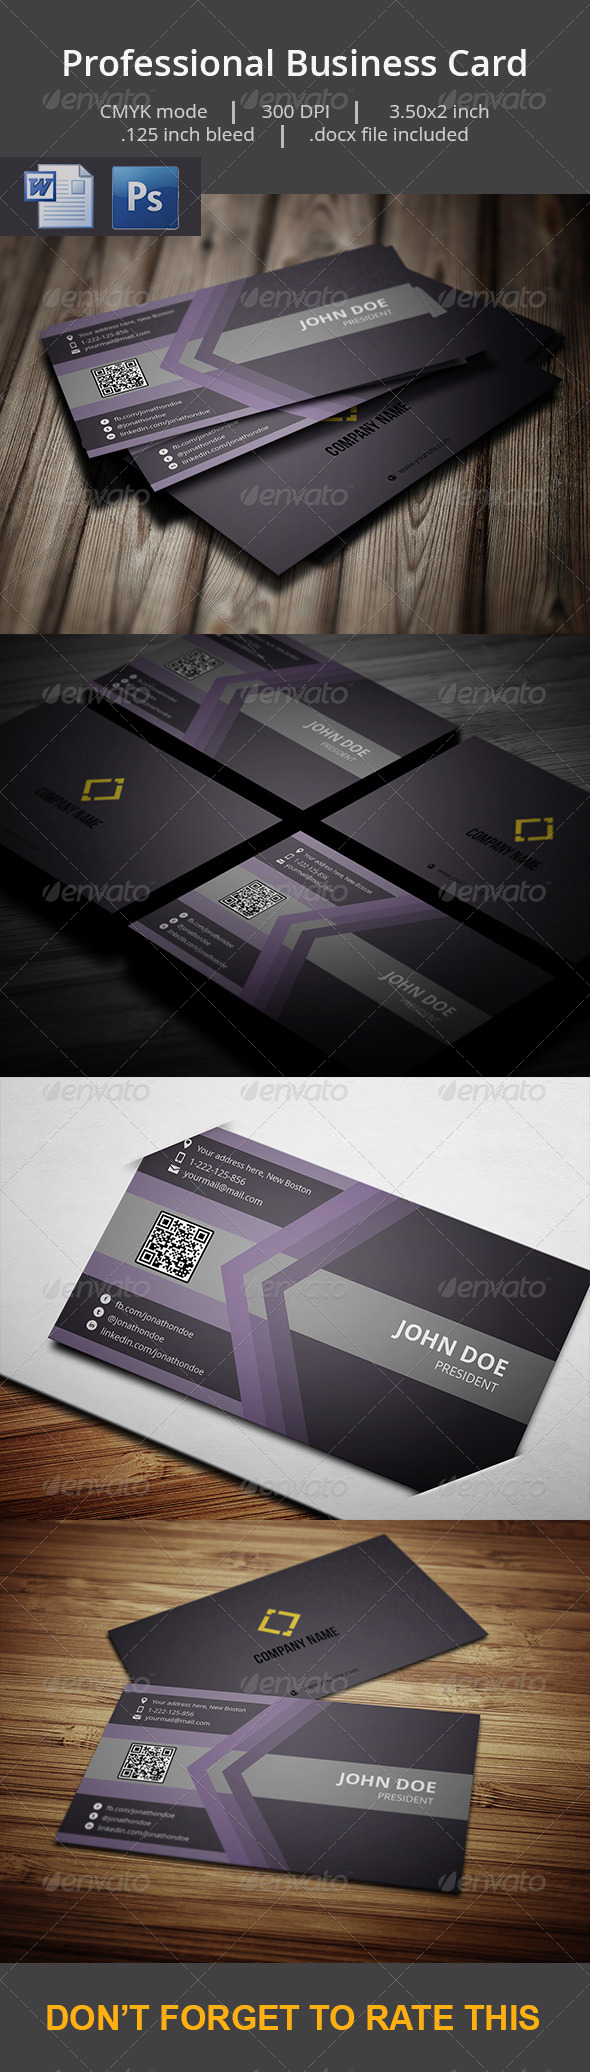 Professional Business Card With MS Word Doc - Business Cards Print Templates